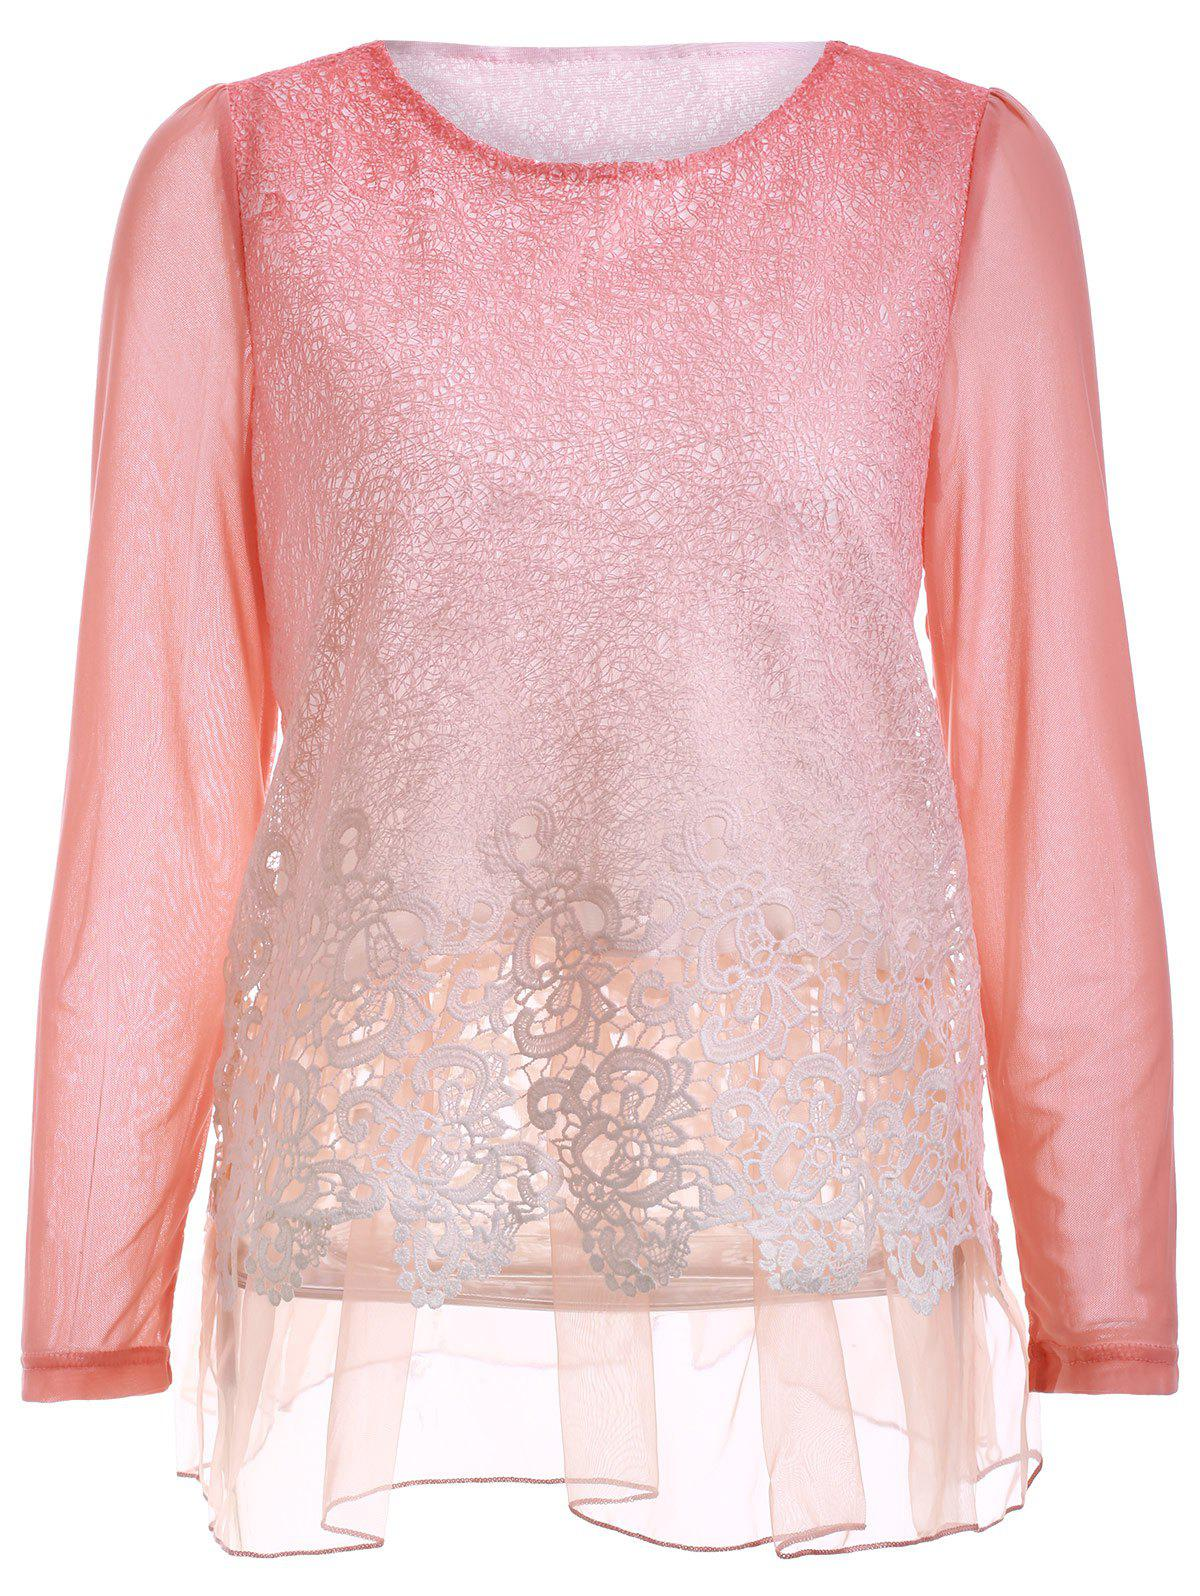 Chic Lace Spliced Hollow Out Loose-Fitting Women's Blouse - PINK 4XL